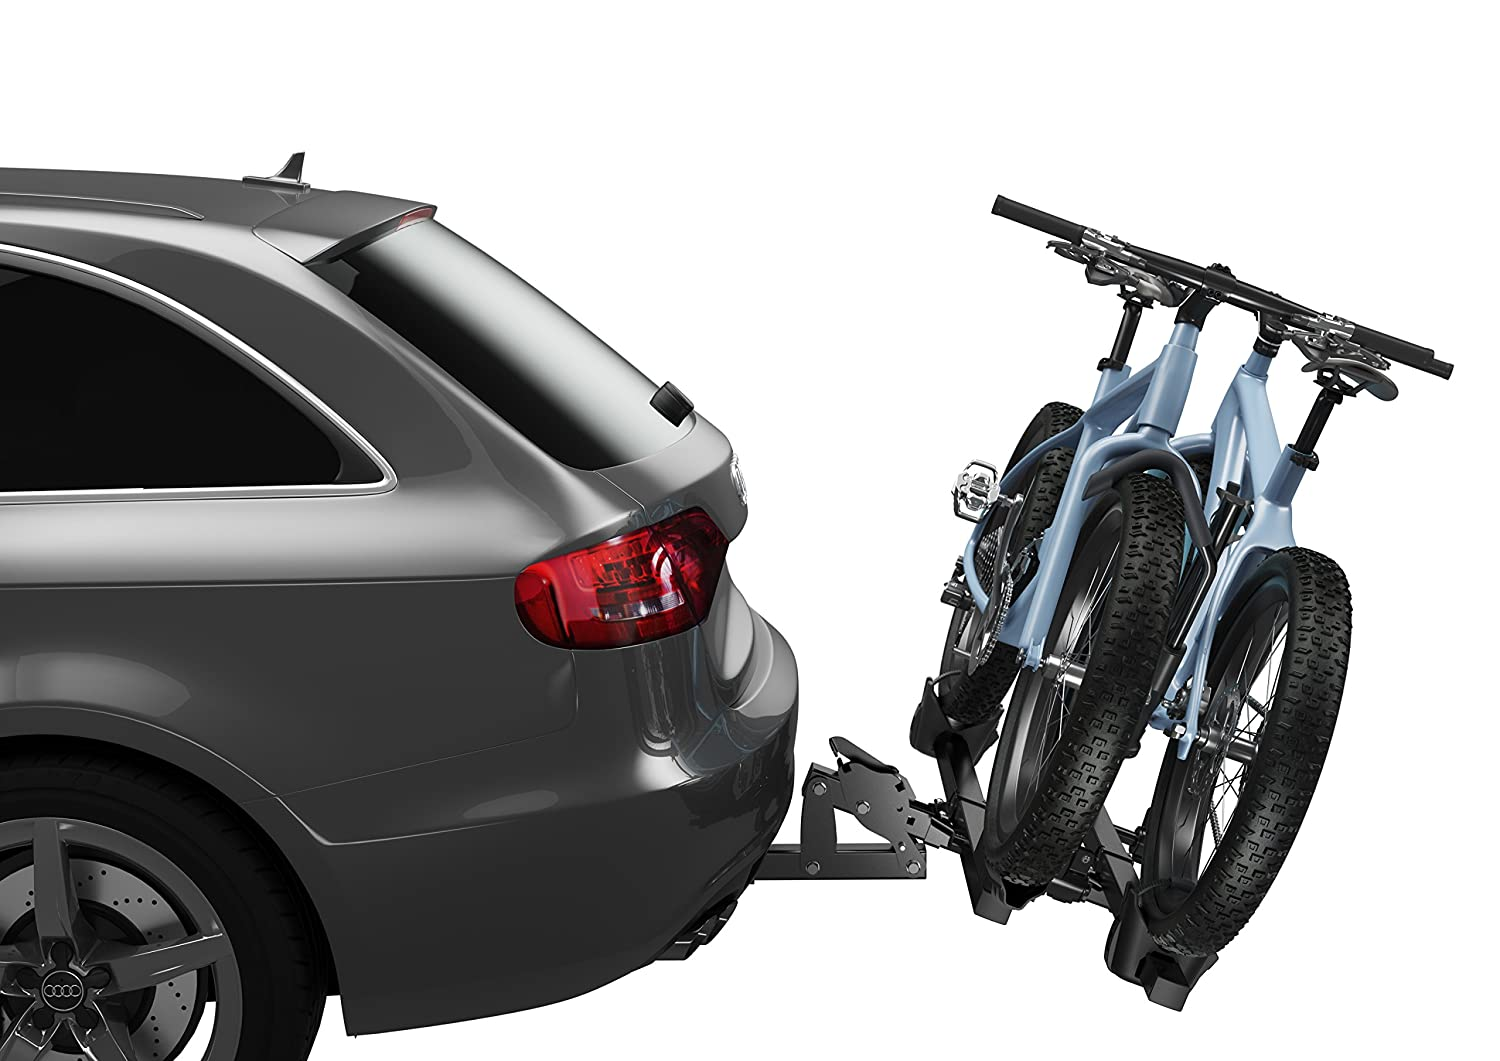 bike cargo basket devil p hitch bccb rack apex bdx carrier blue with racks carriers steel